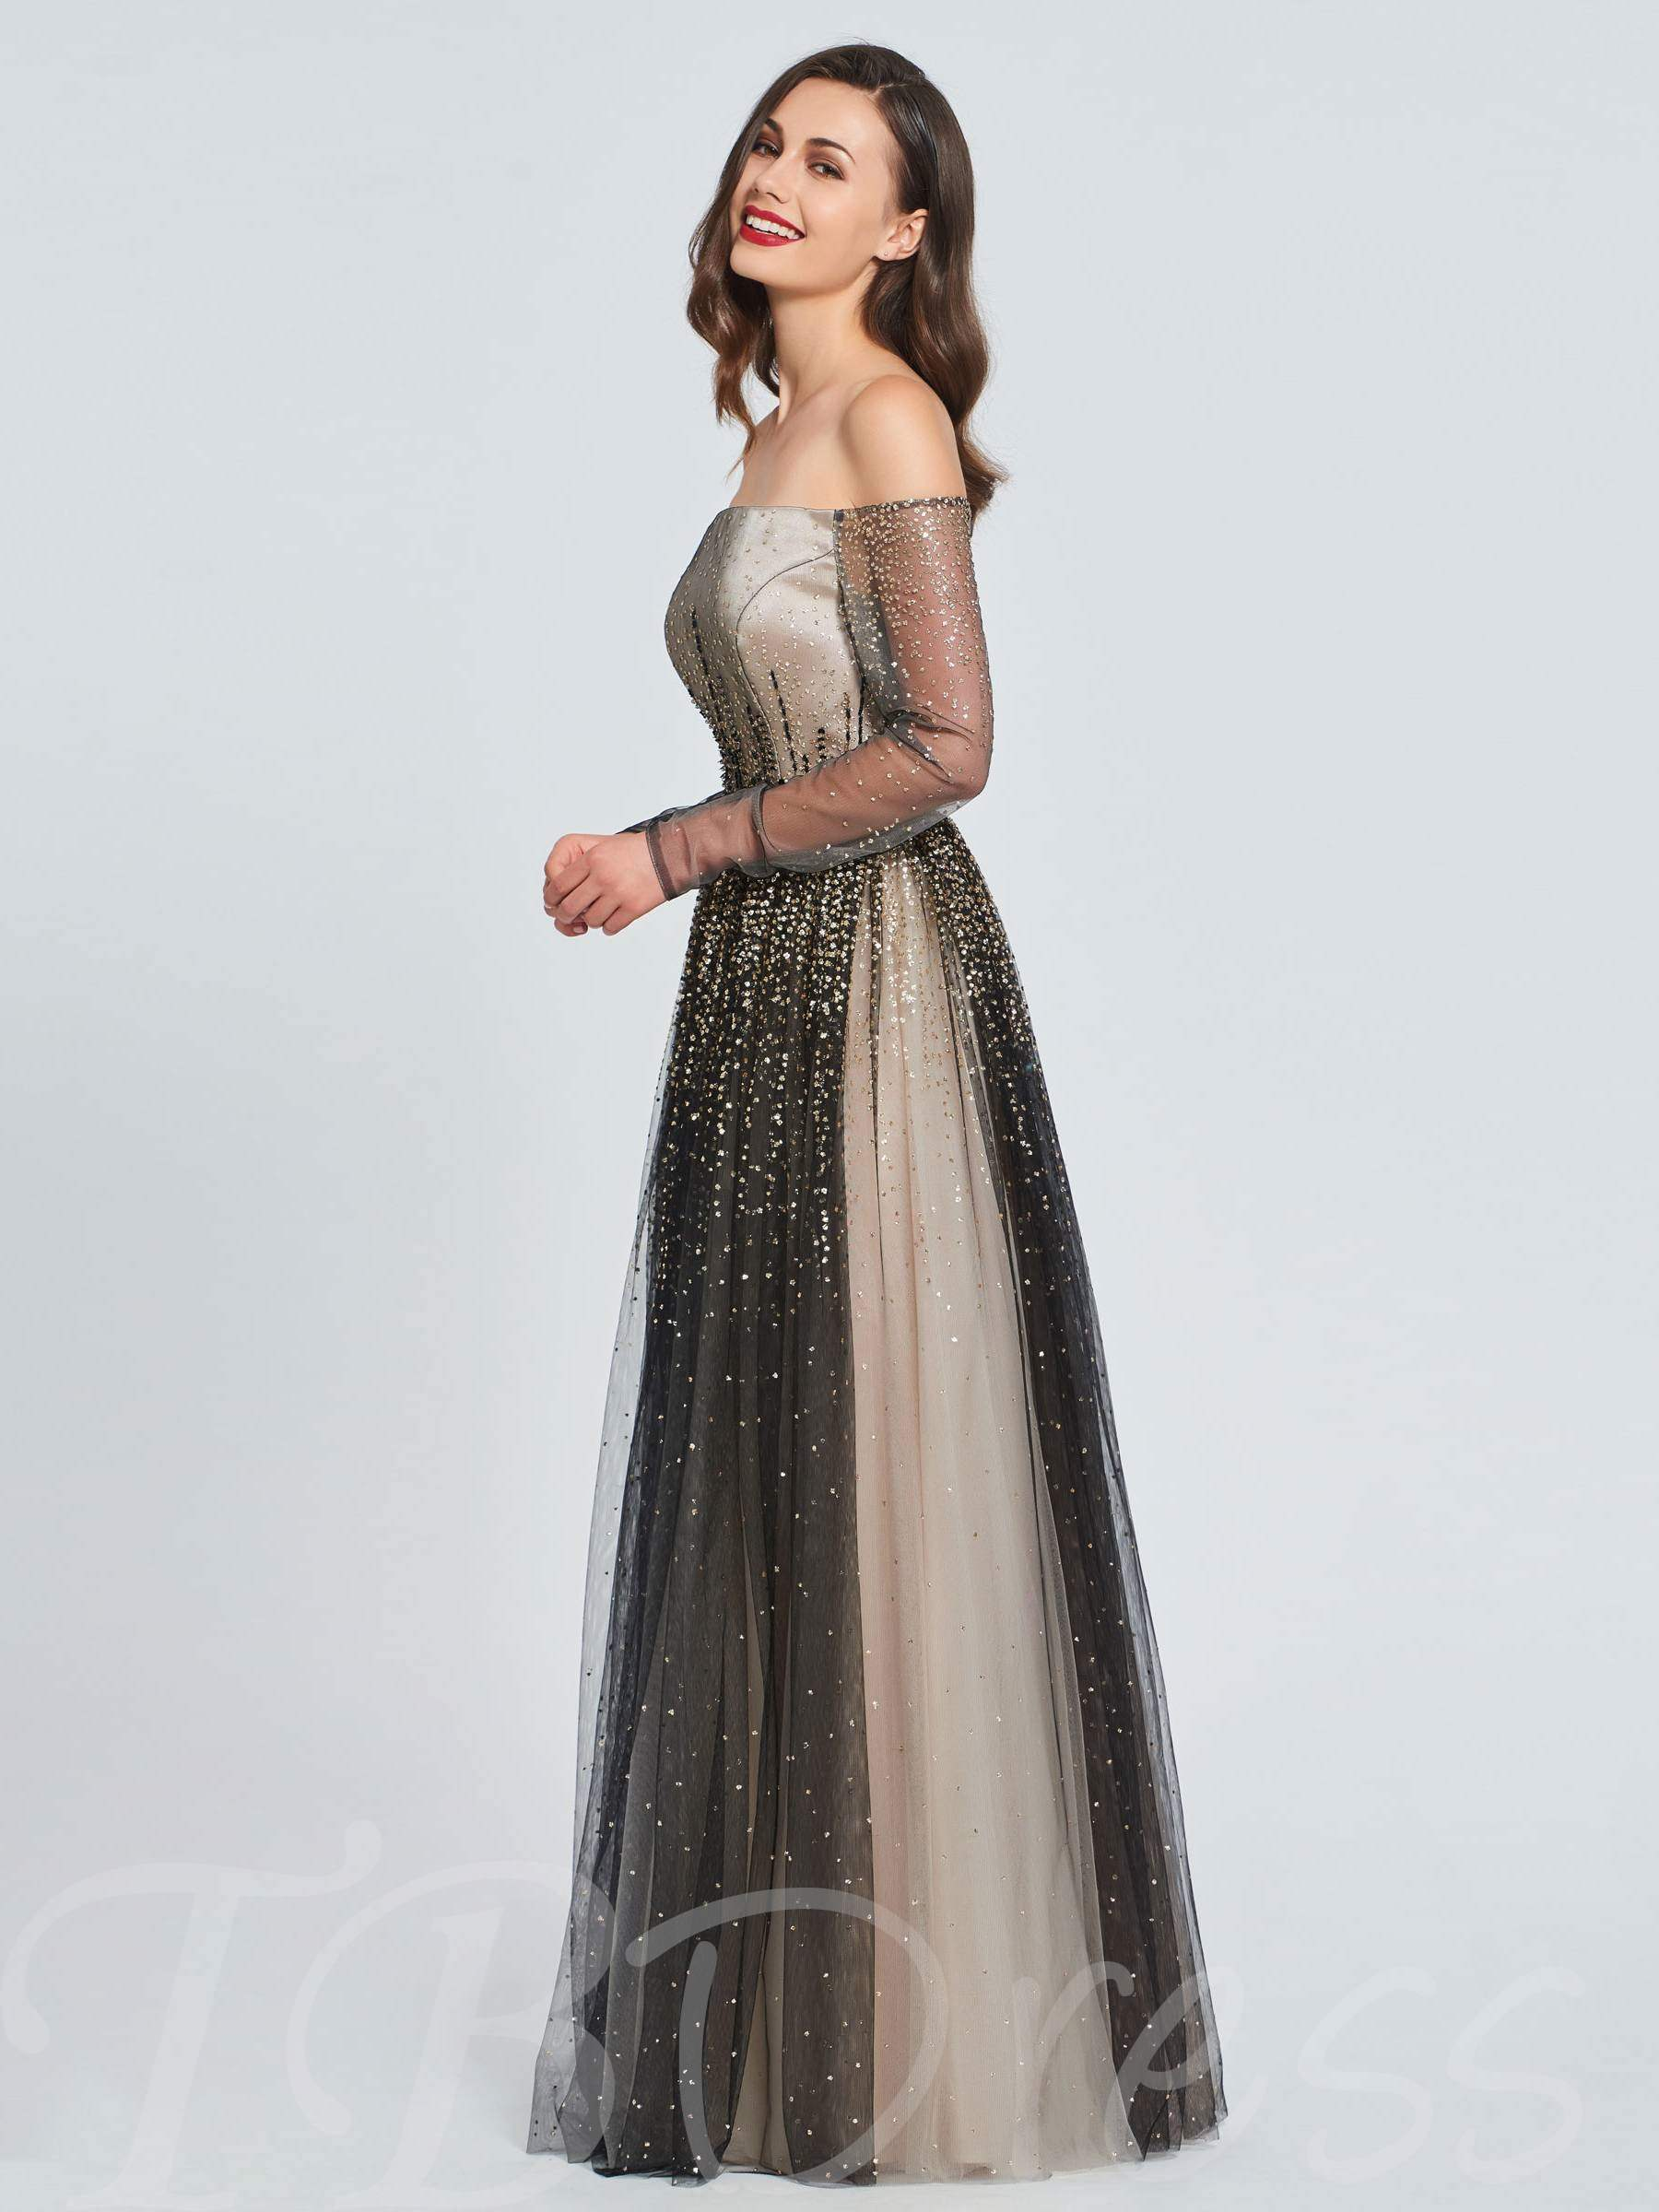 Buy A-Line Off-the-Shoulder Beading Prom Dress, Spring,Summer,Fall,Winter, 13397996 for $169.99 in TBDress store